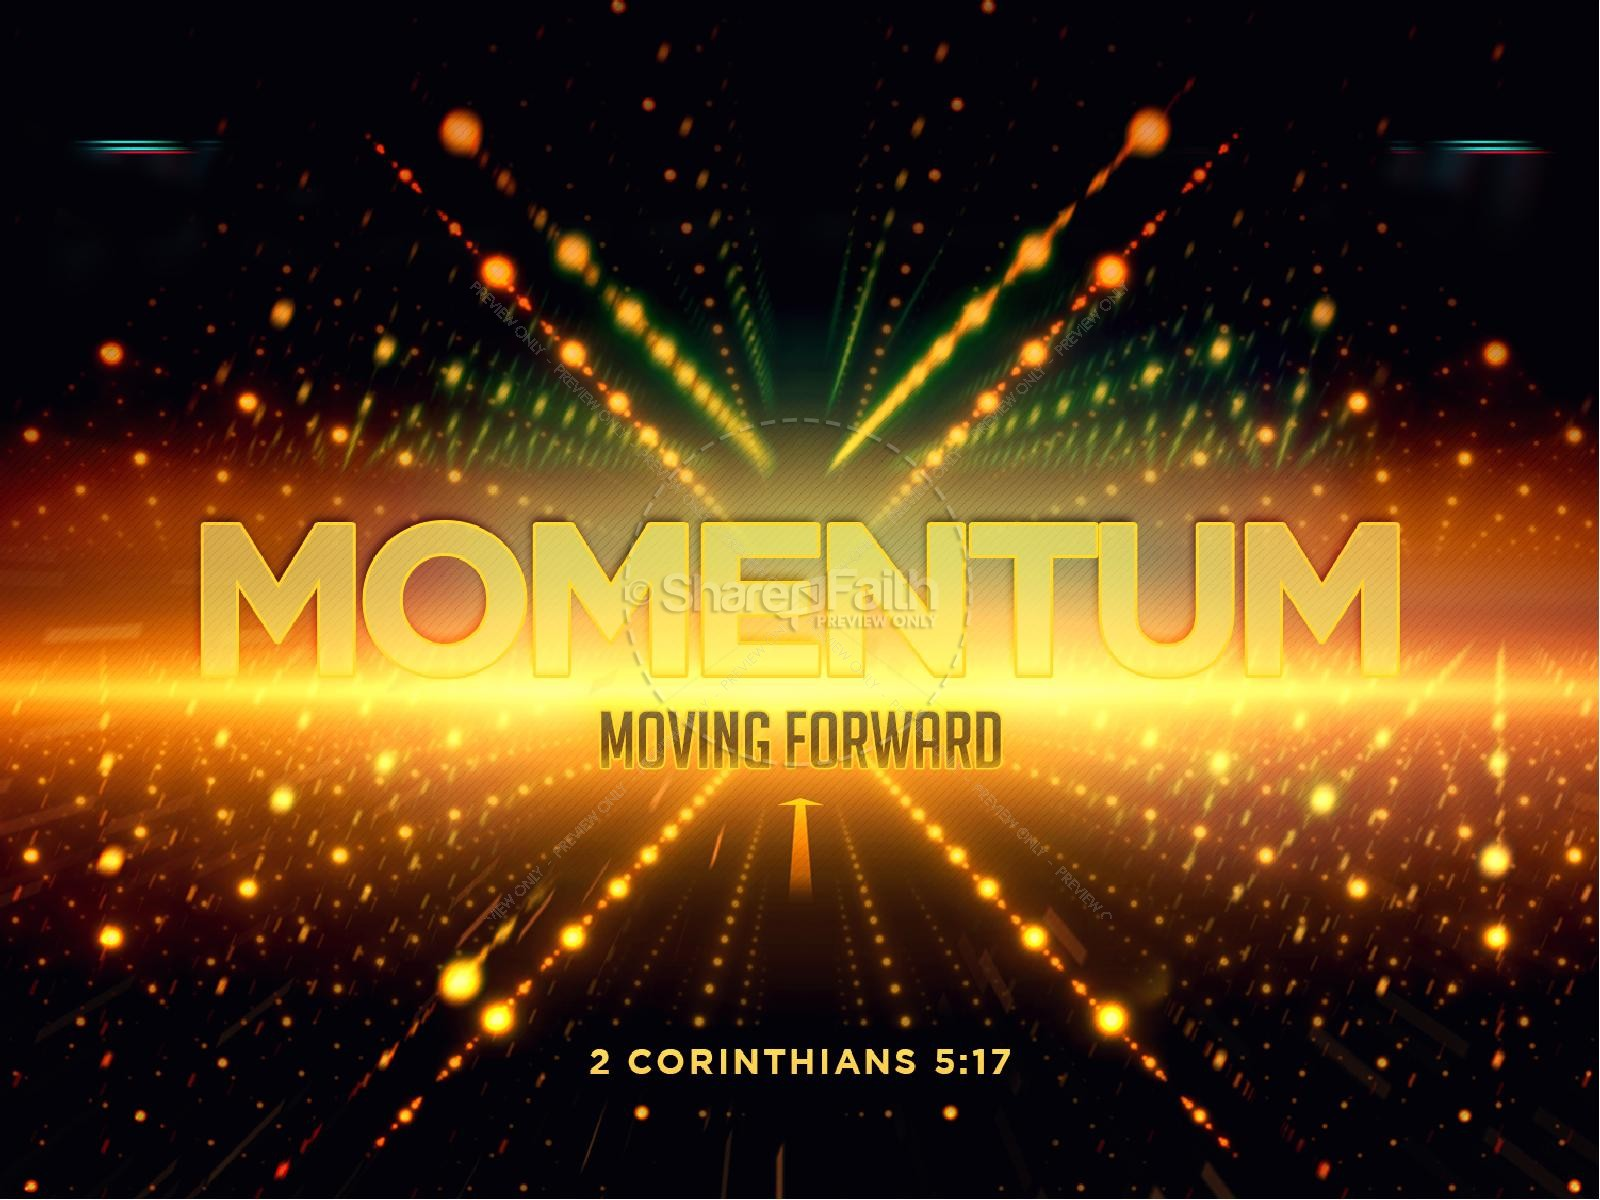 Church announcements announcement backgrounds sharefaith page 2 - Momentum Sermon Powerpoint